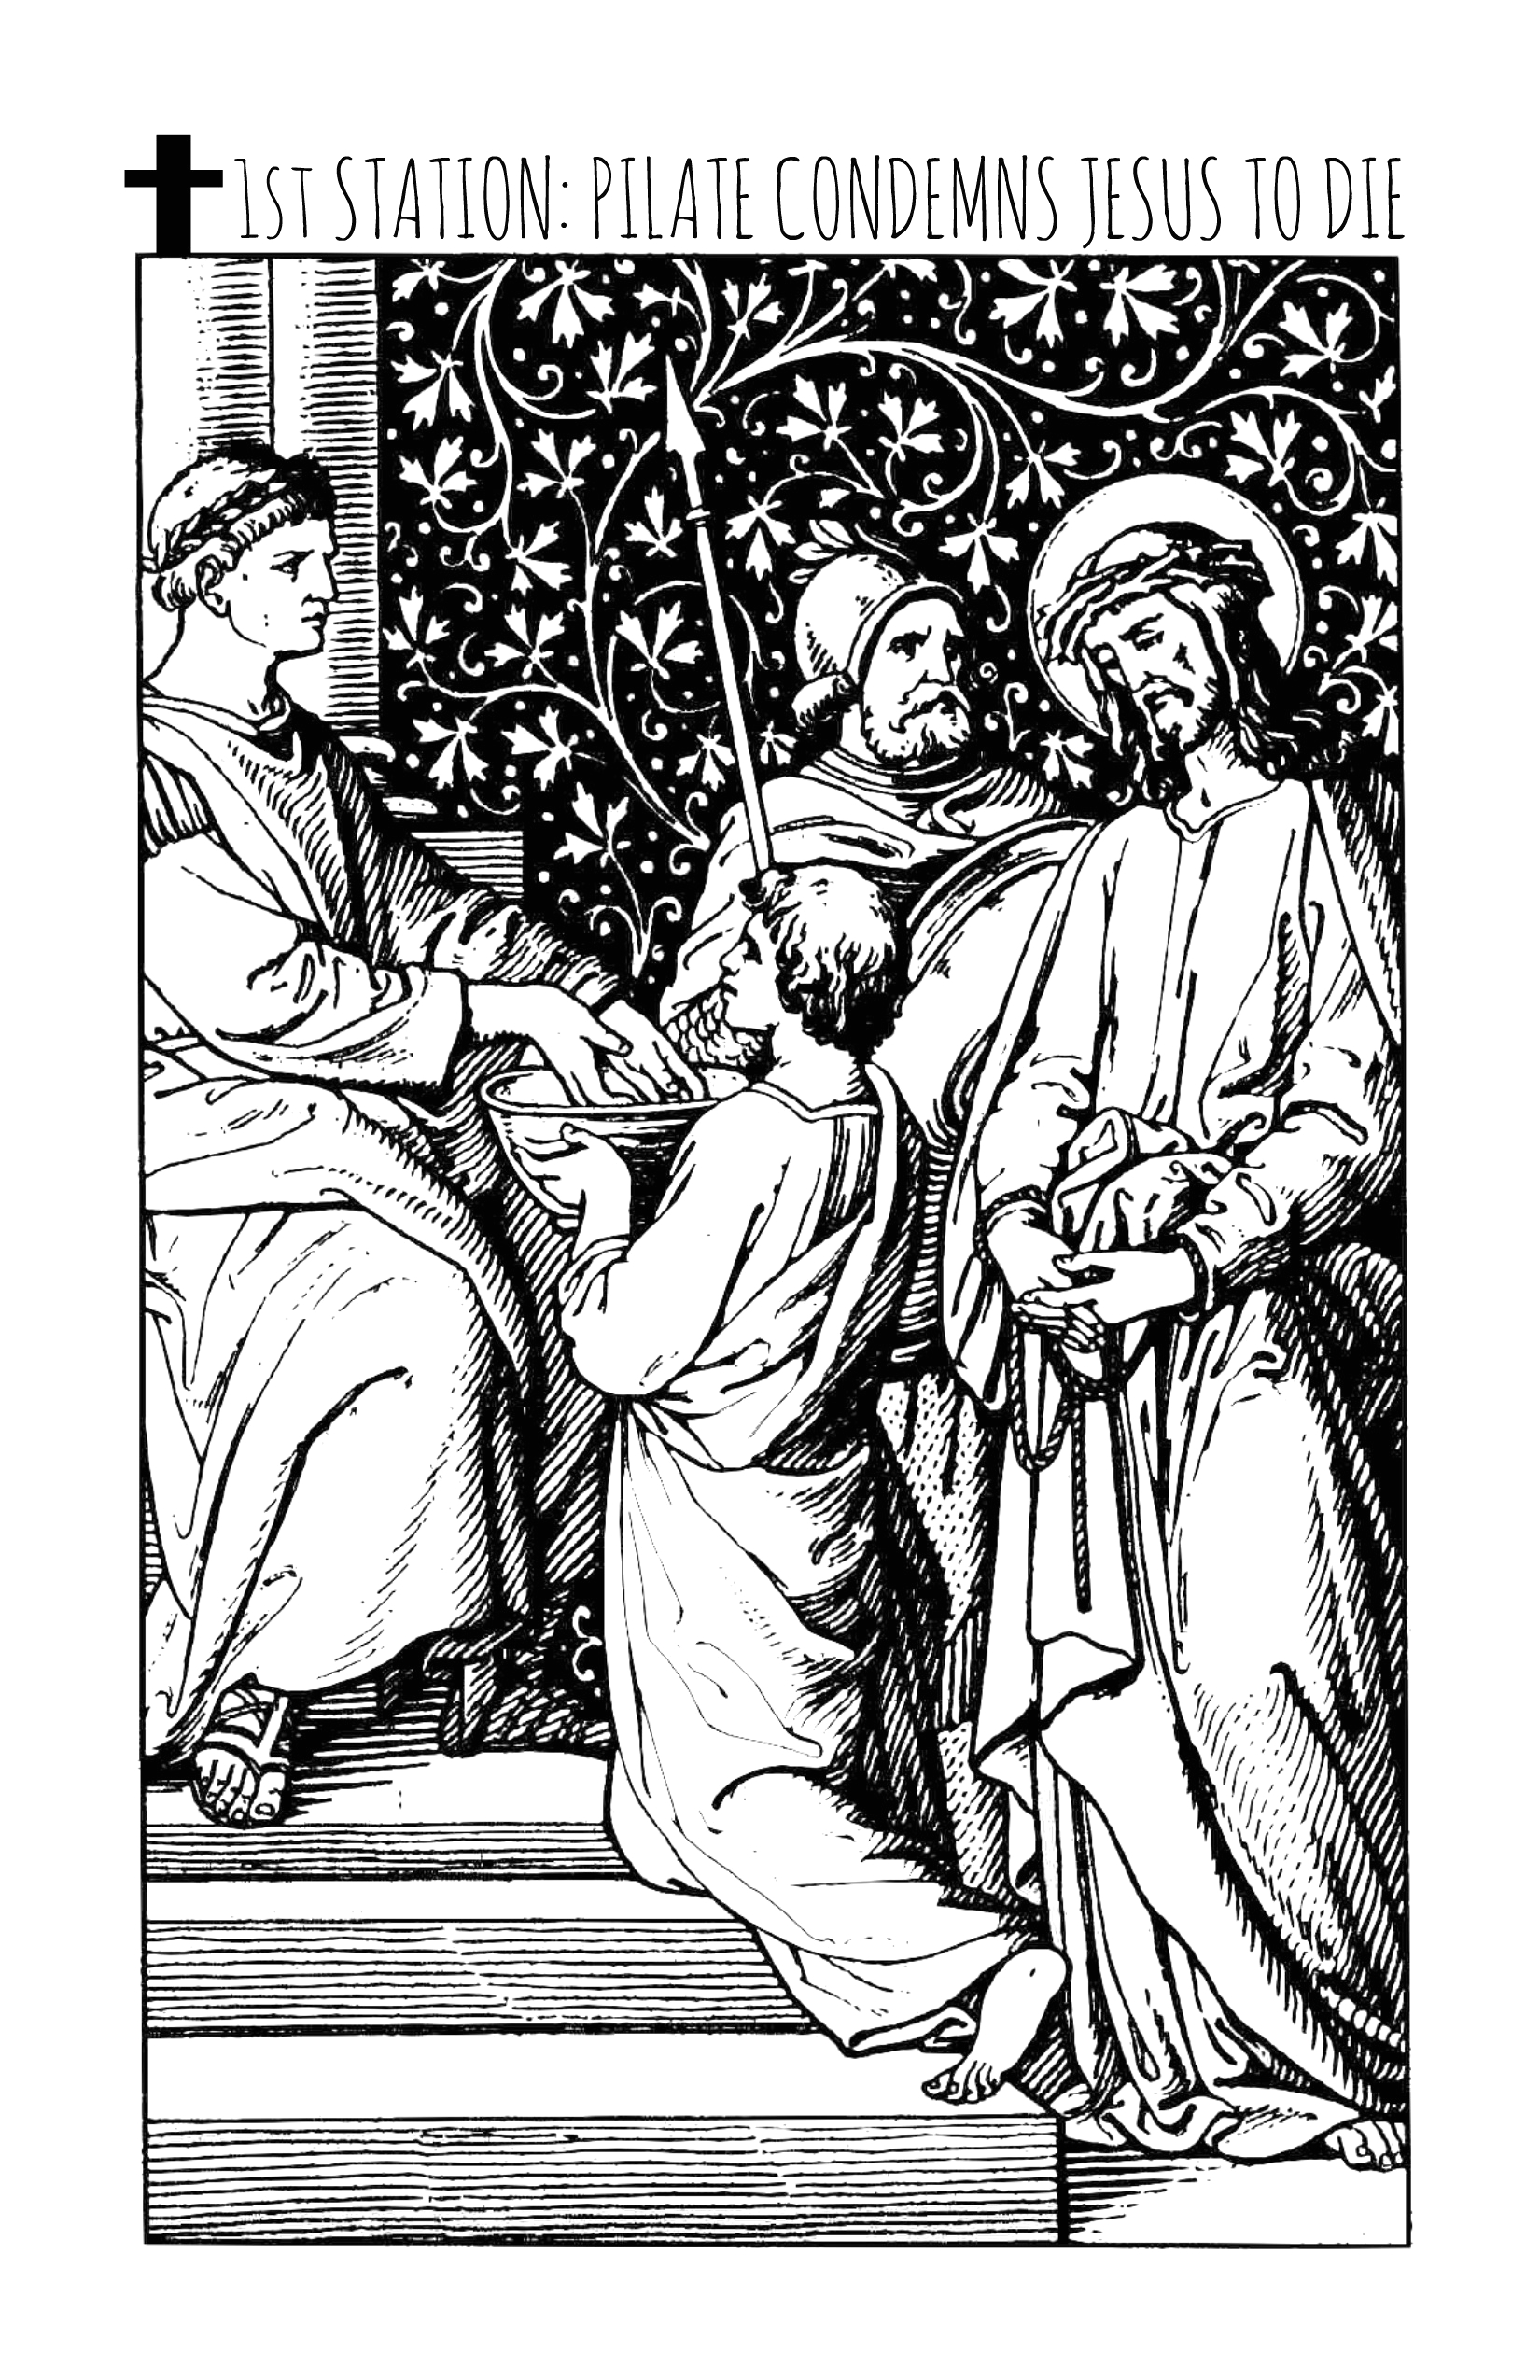 stations of the cross printable coloring book